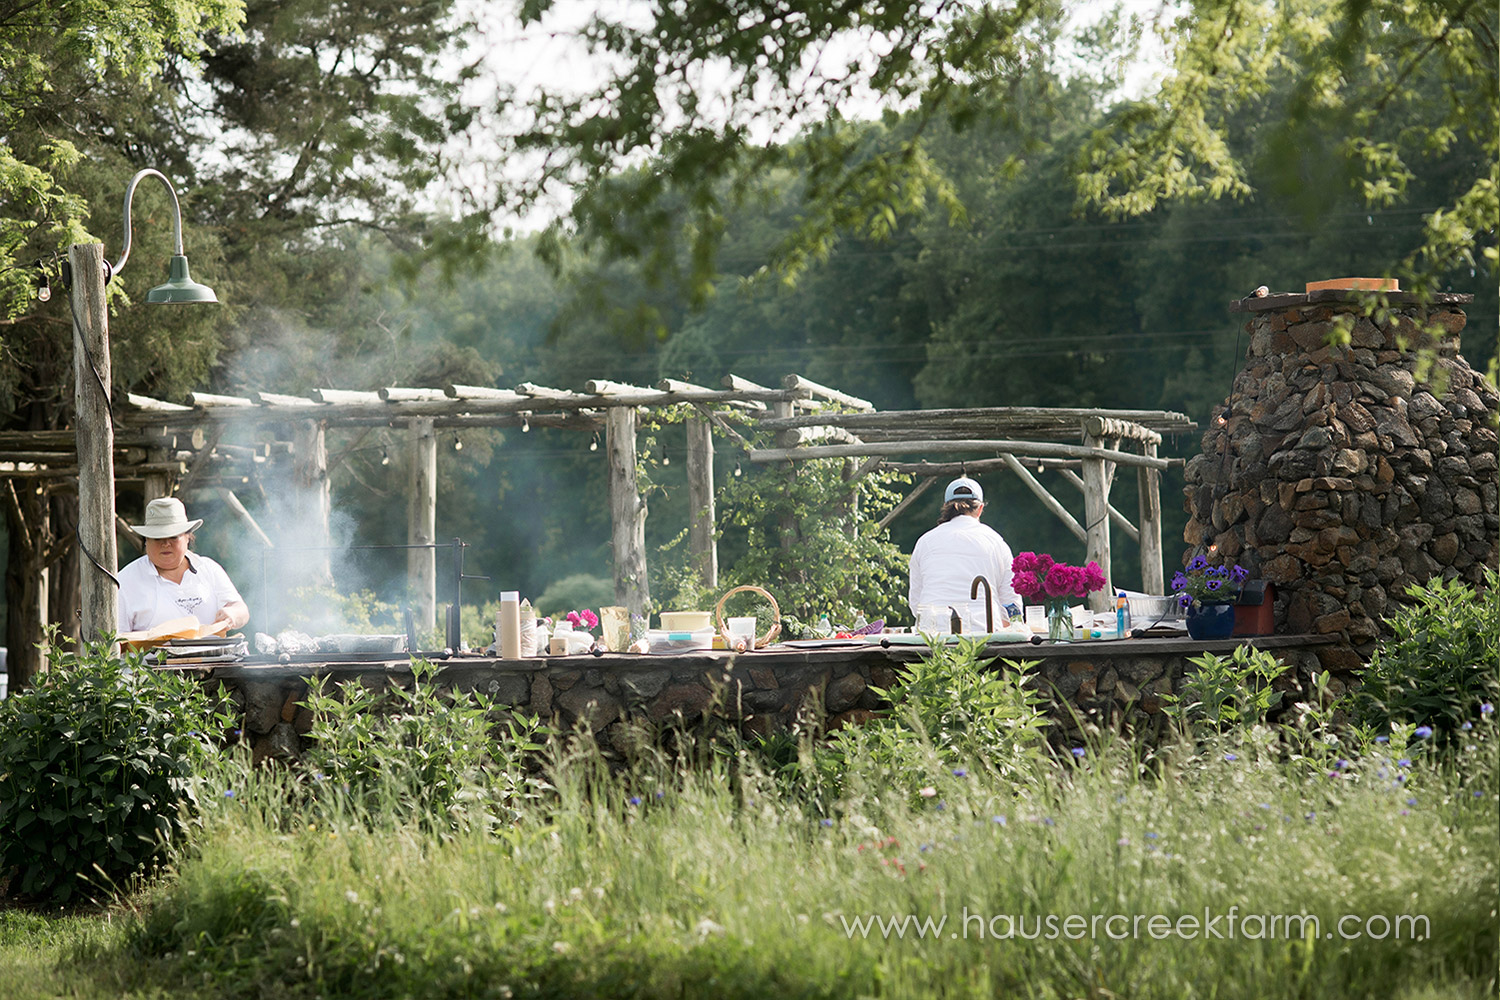 thyme-well-spent-cooking-for-event-at-hauser-creek-farm-north-carolina-2017_189.jpg